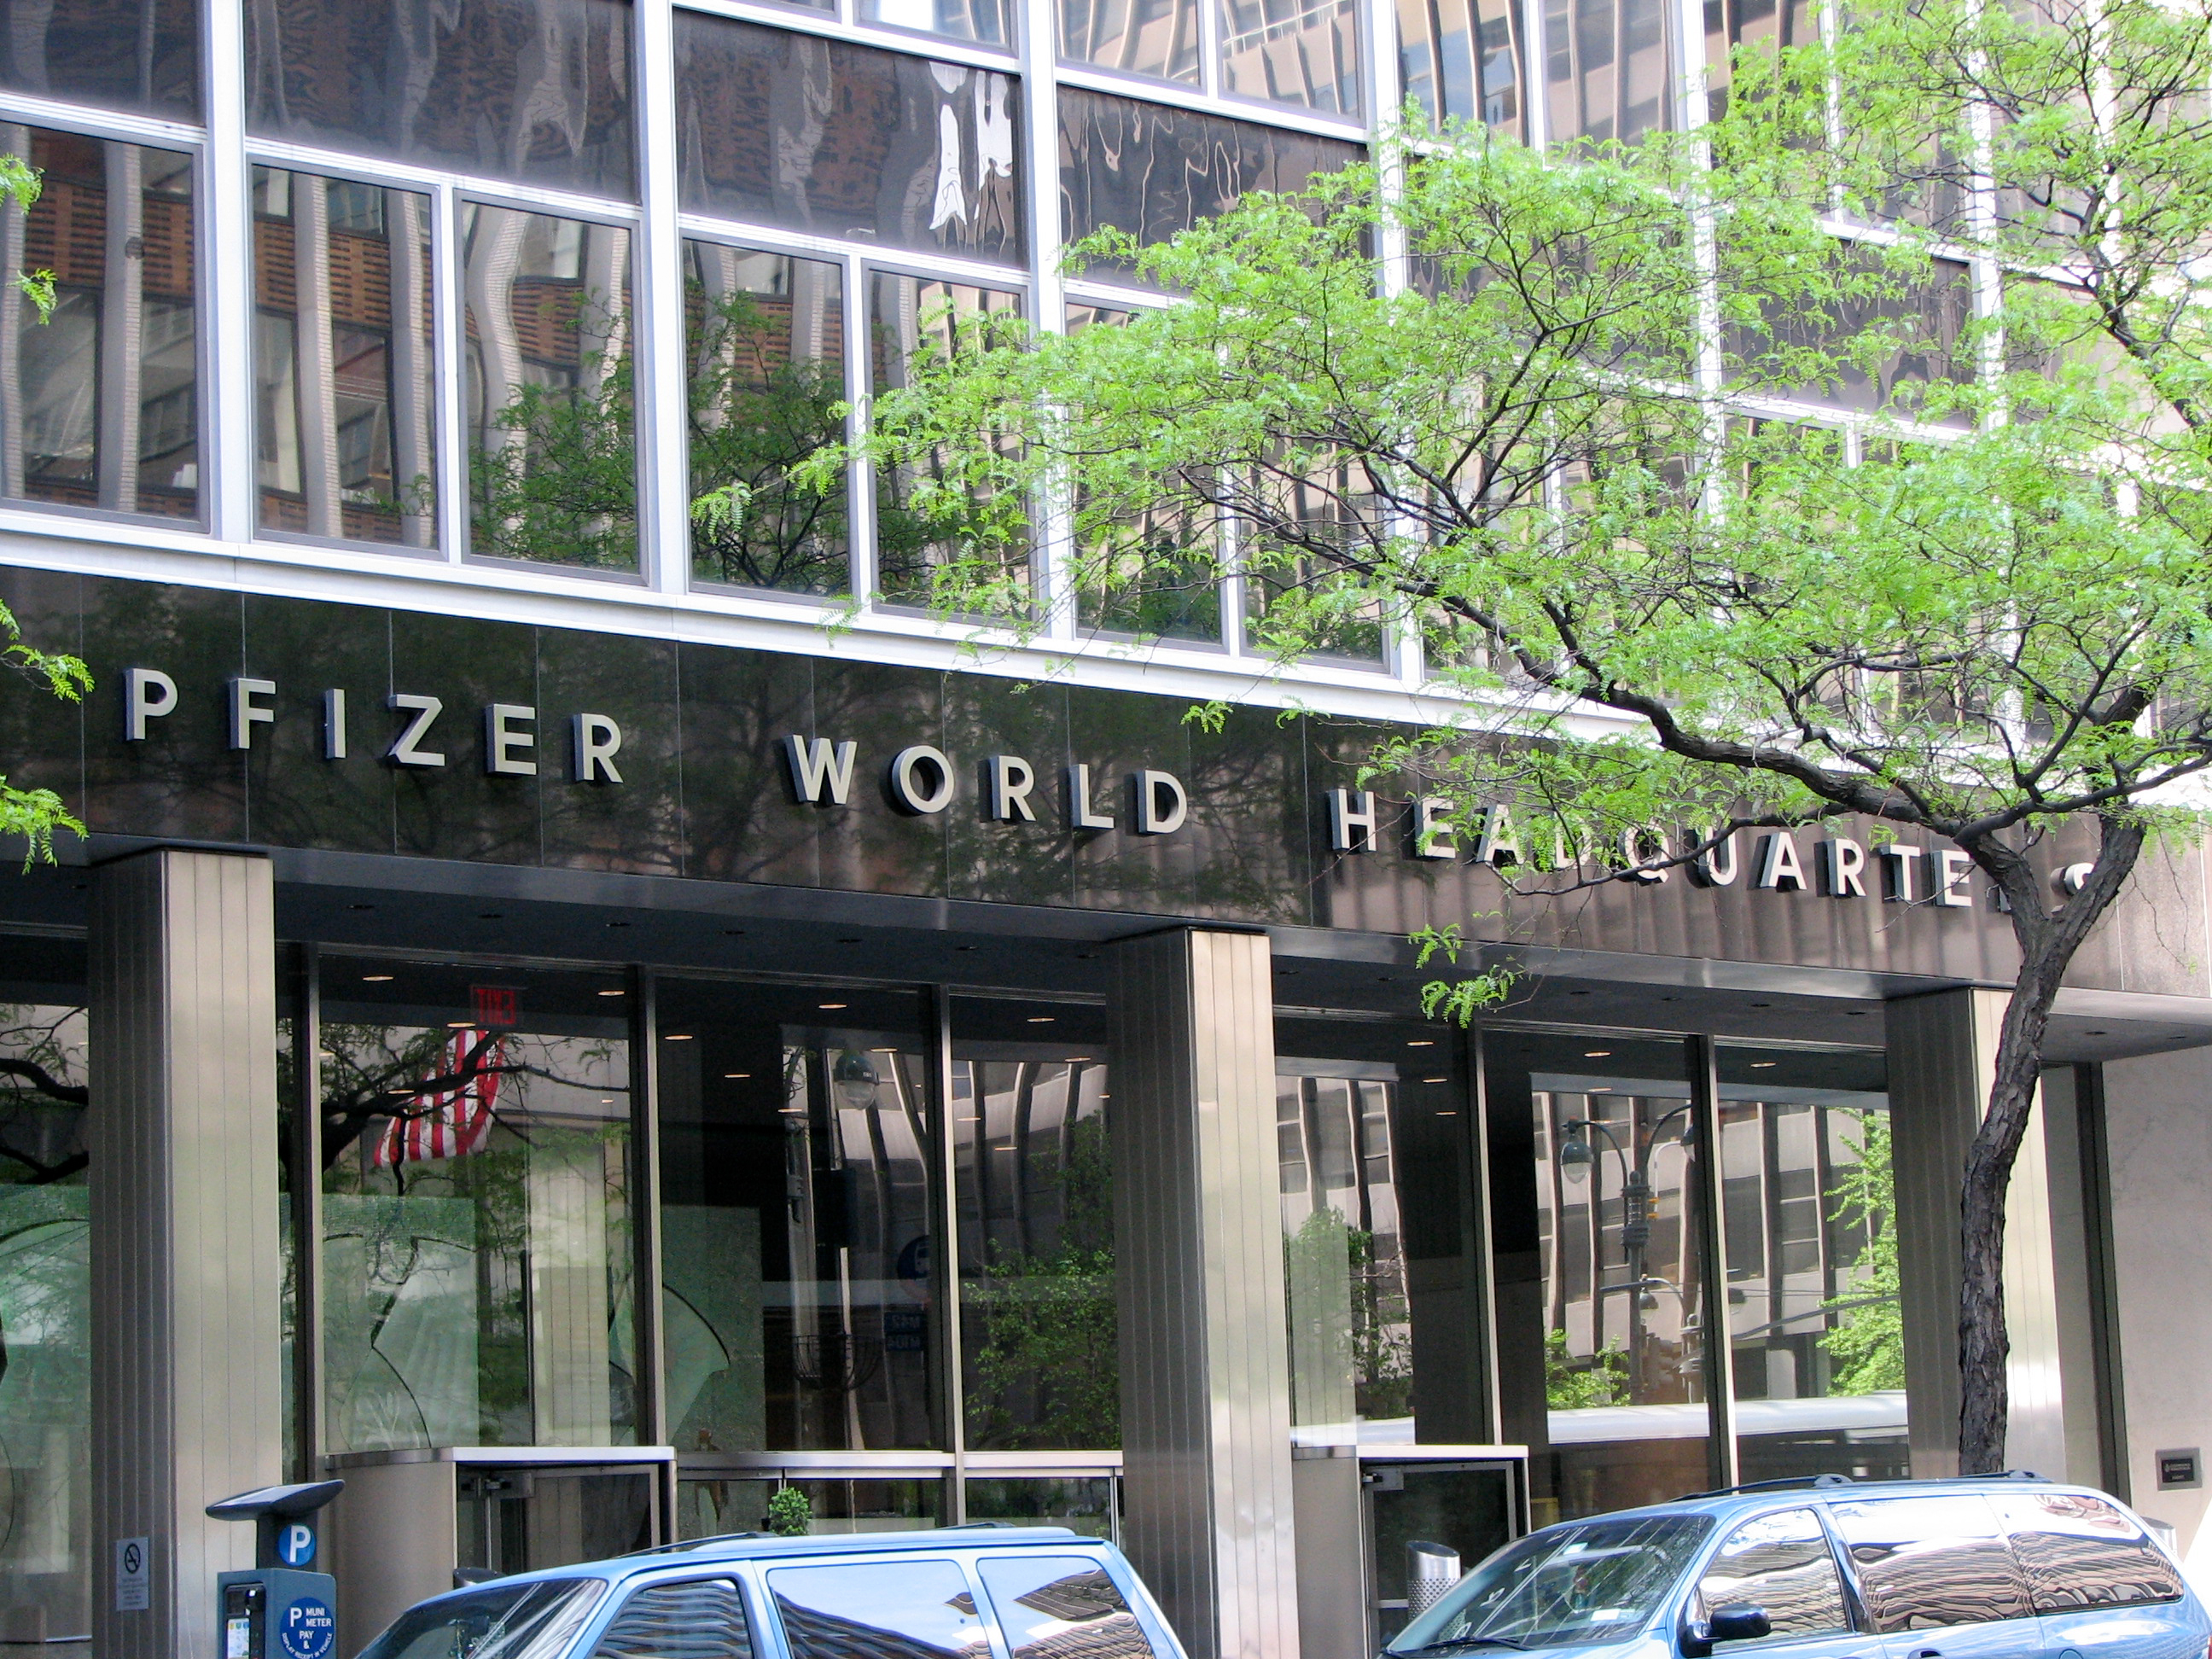 Pfizer dumps PCSK9 inhibitor bococizumab after finding 'no value' in med | FierceBiotech